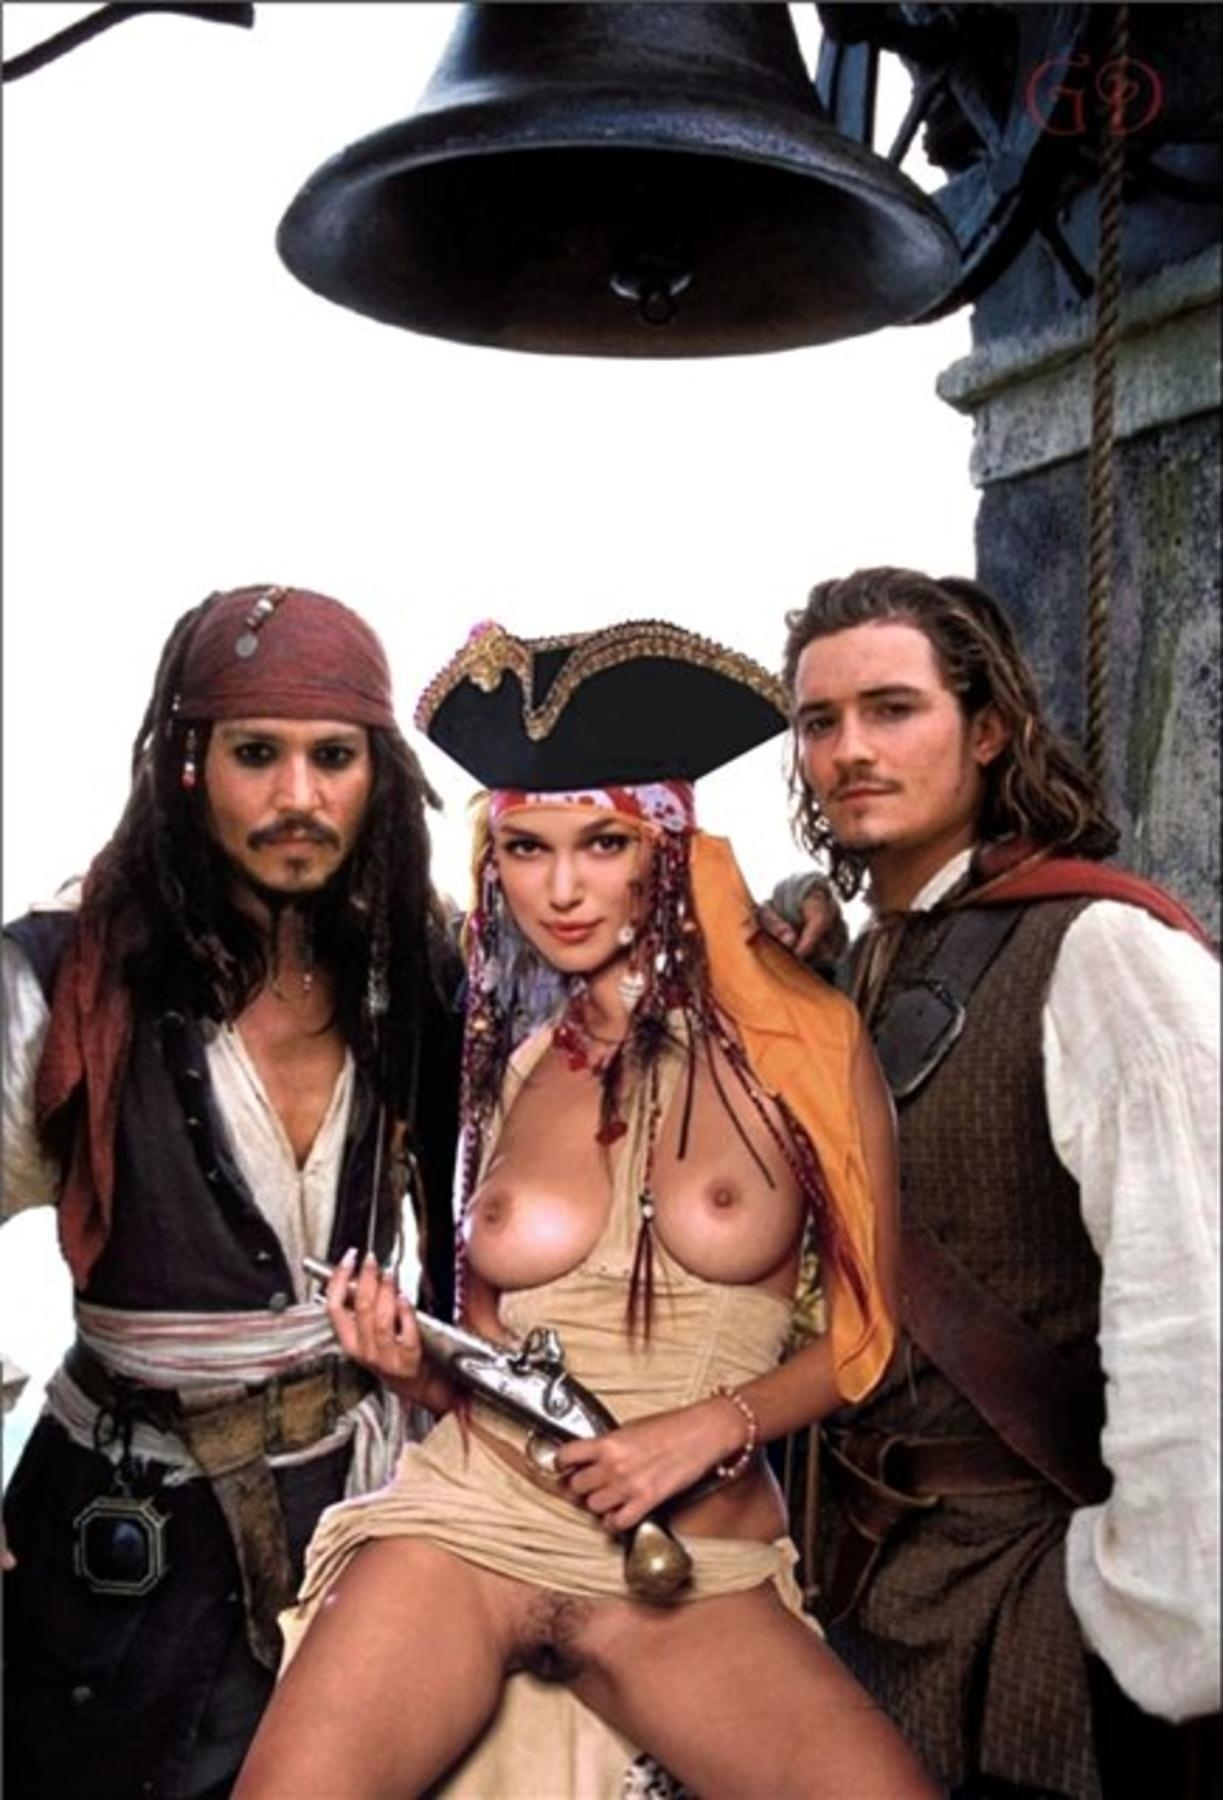 Pictures from pirates 1porn movies anime scene